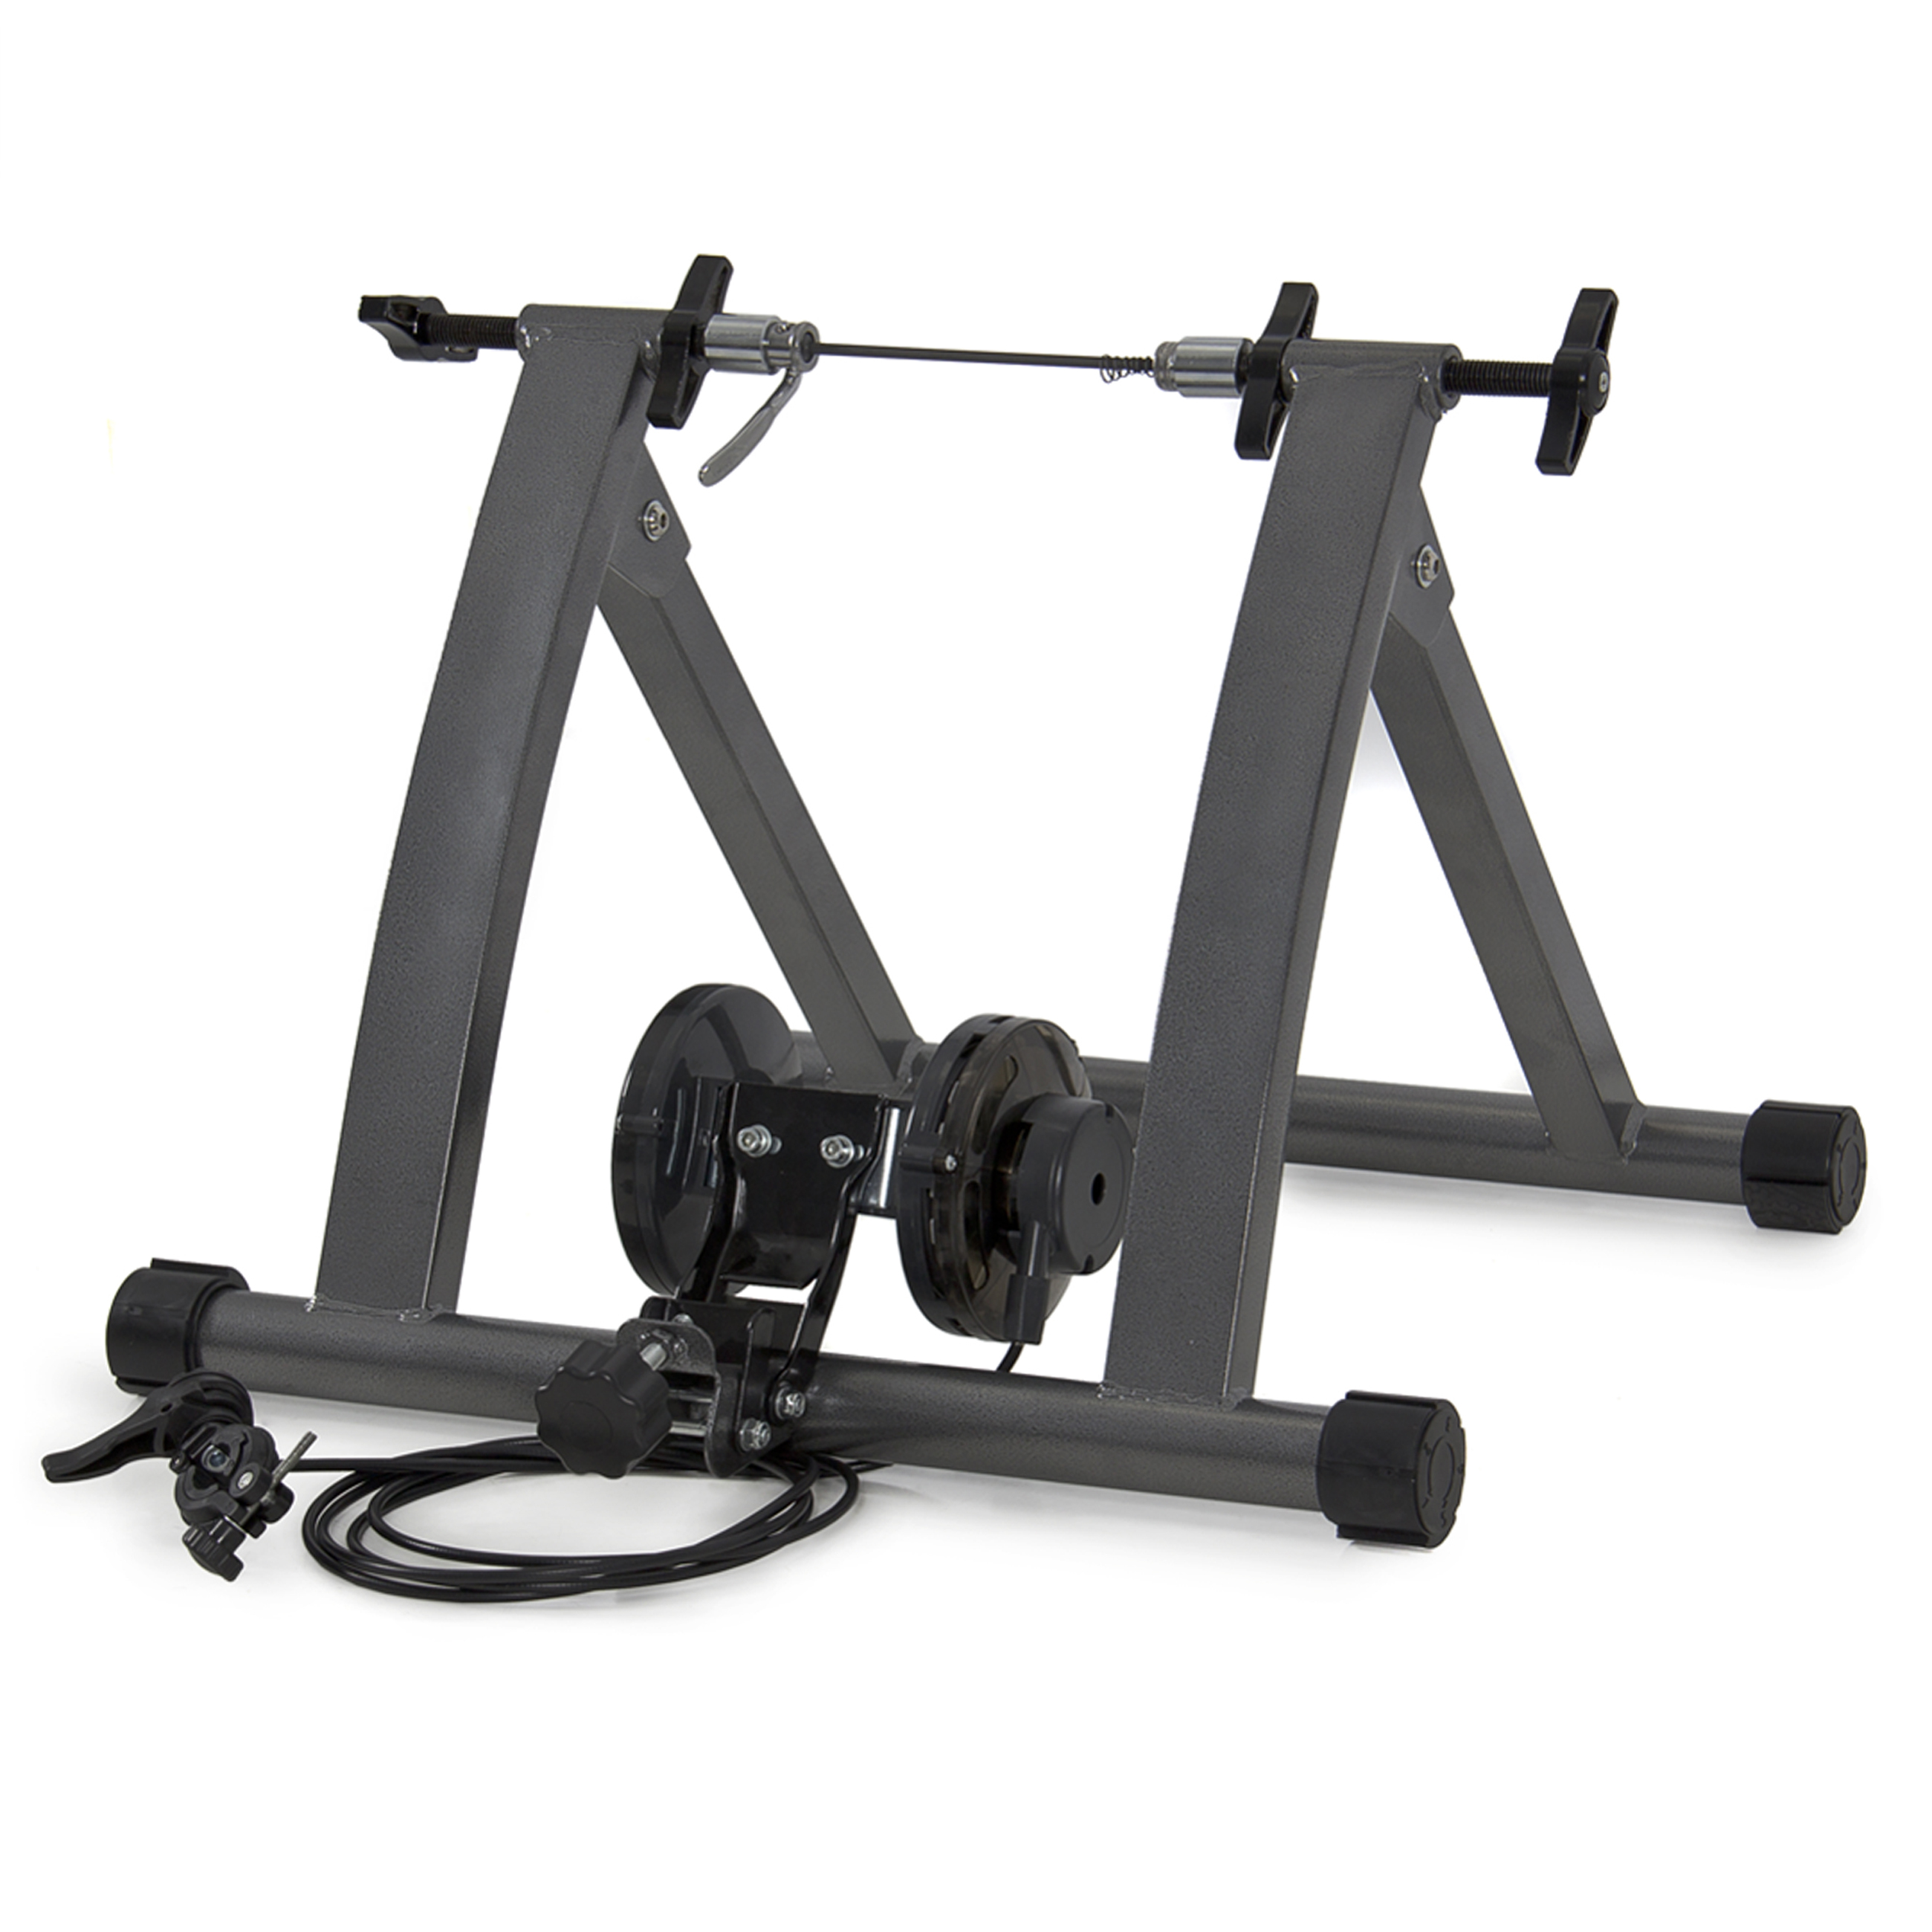 e5aeab0f91d Best Choice Products New Indoor Exercise Bike Bicycle Trainer Stand W/ 5  Levels Resistance Stationary - Walmart.com